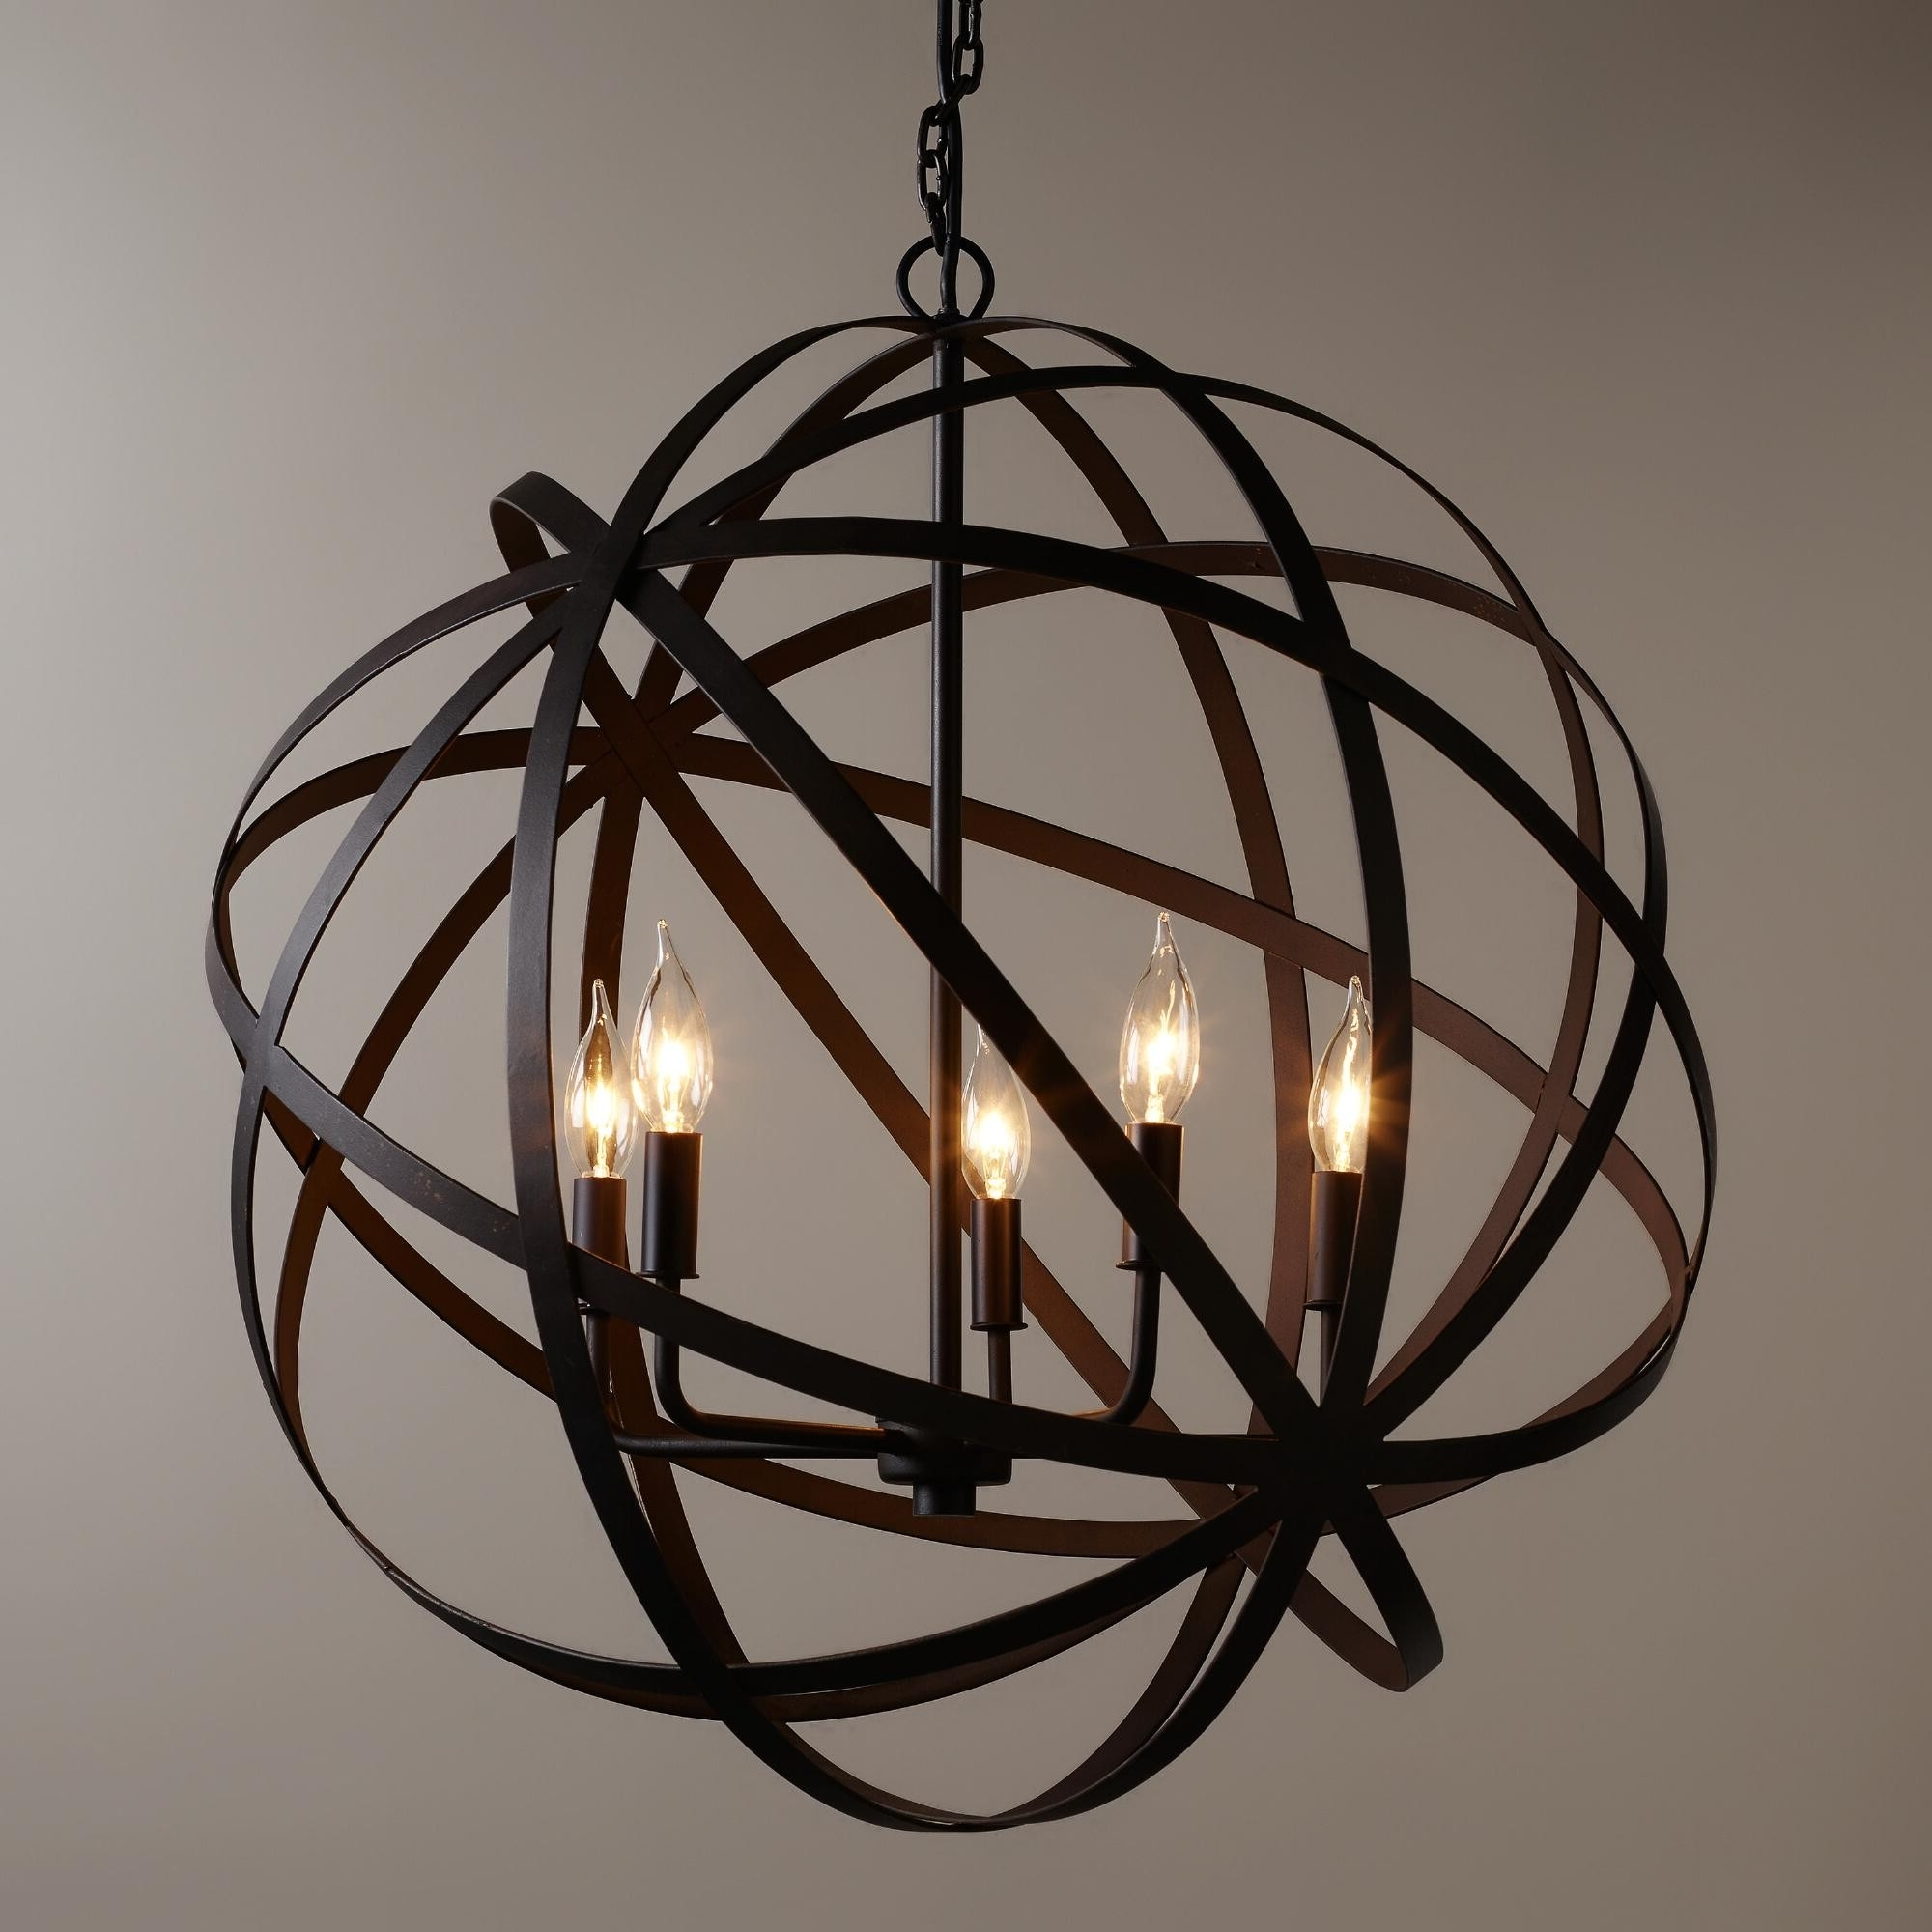 Inspiration about Outdoor Lighting: Marvellous Large Exterior Chandeliers Dusk To Dawn Throughout Contemporary Rustic Outdoor Lighting At Wayfair (#14 of 15)